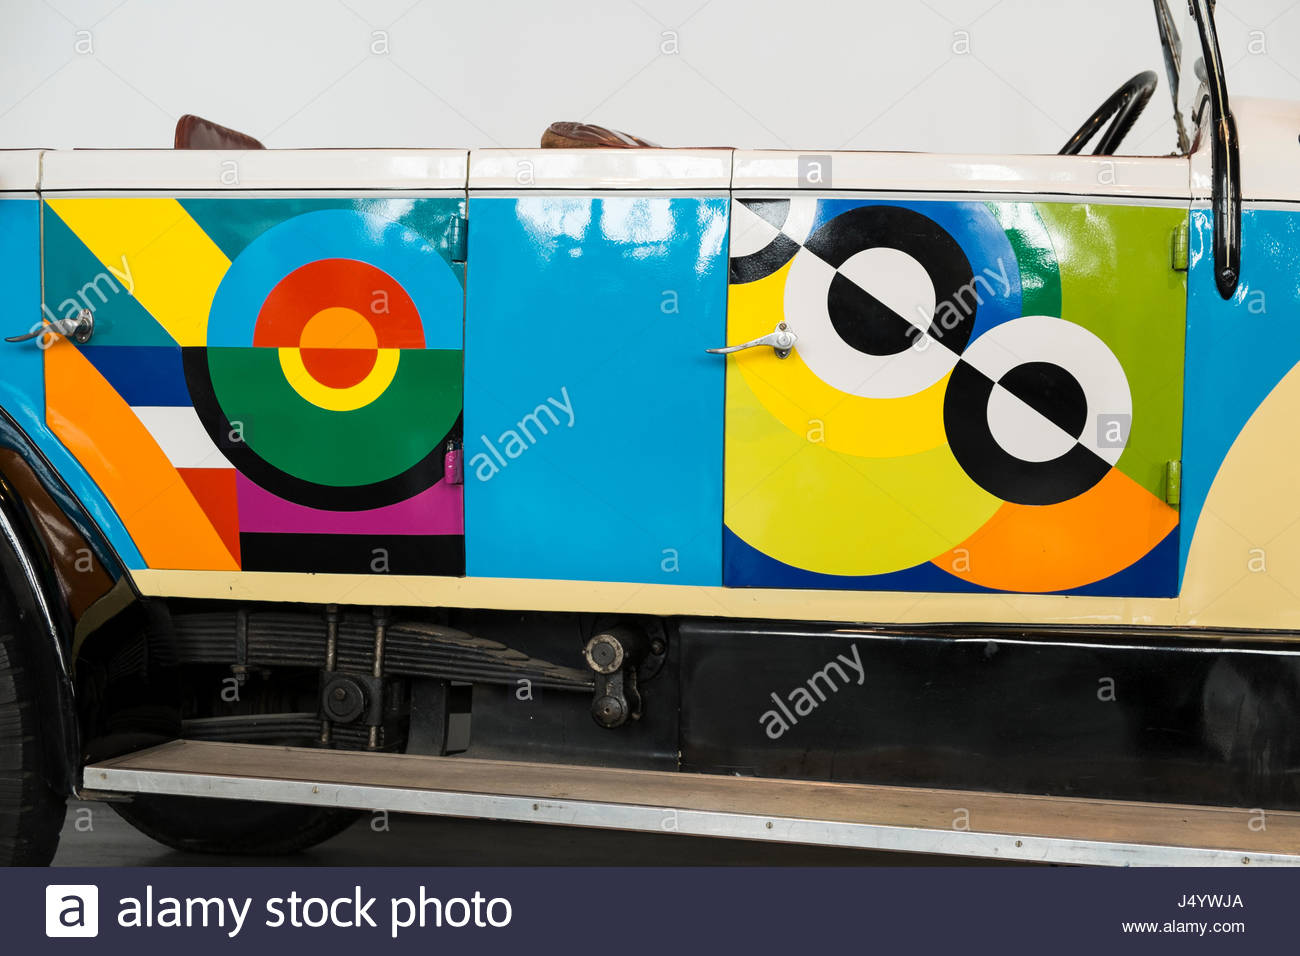 1920 Unic. Sonia Delaunay. Automobile museum of Malaga, Andalusia, Spain. - Stock Image